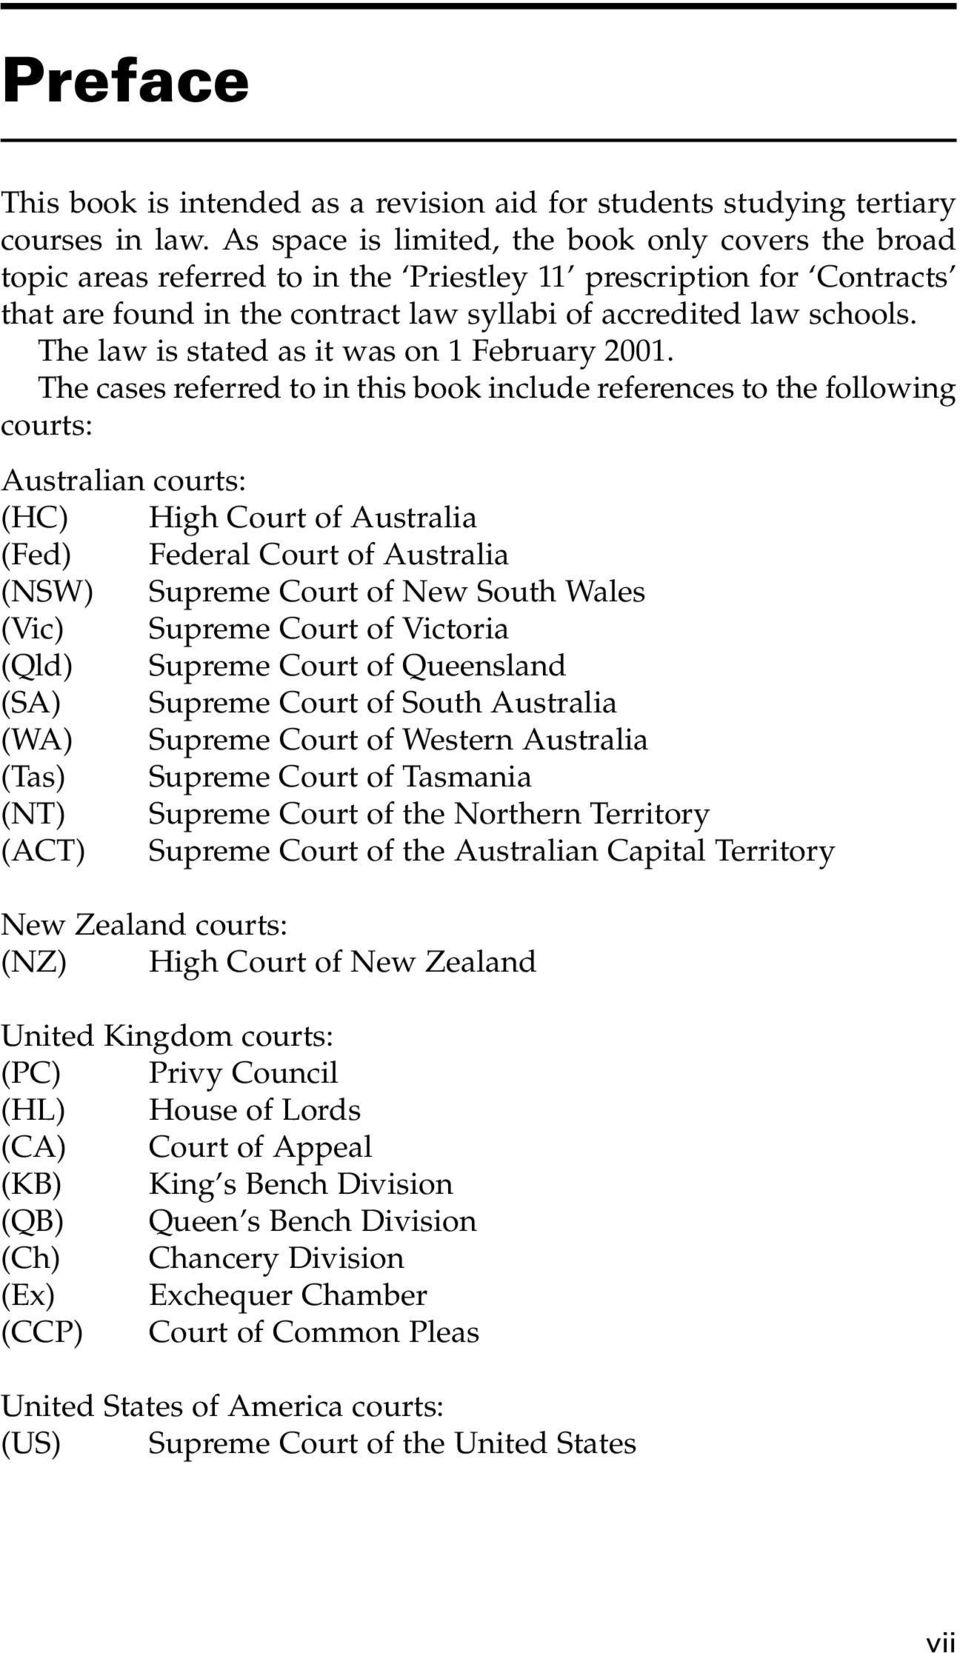 The law is stated as it was on 1 February 2001.